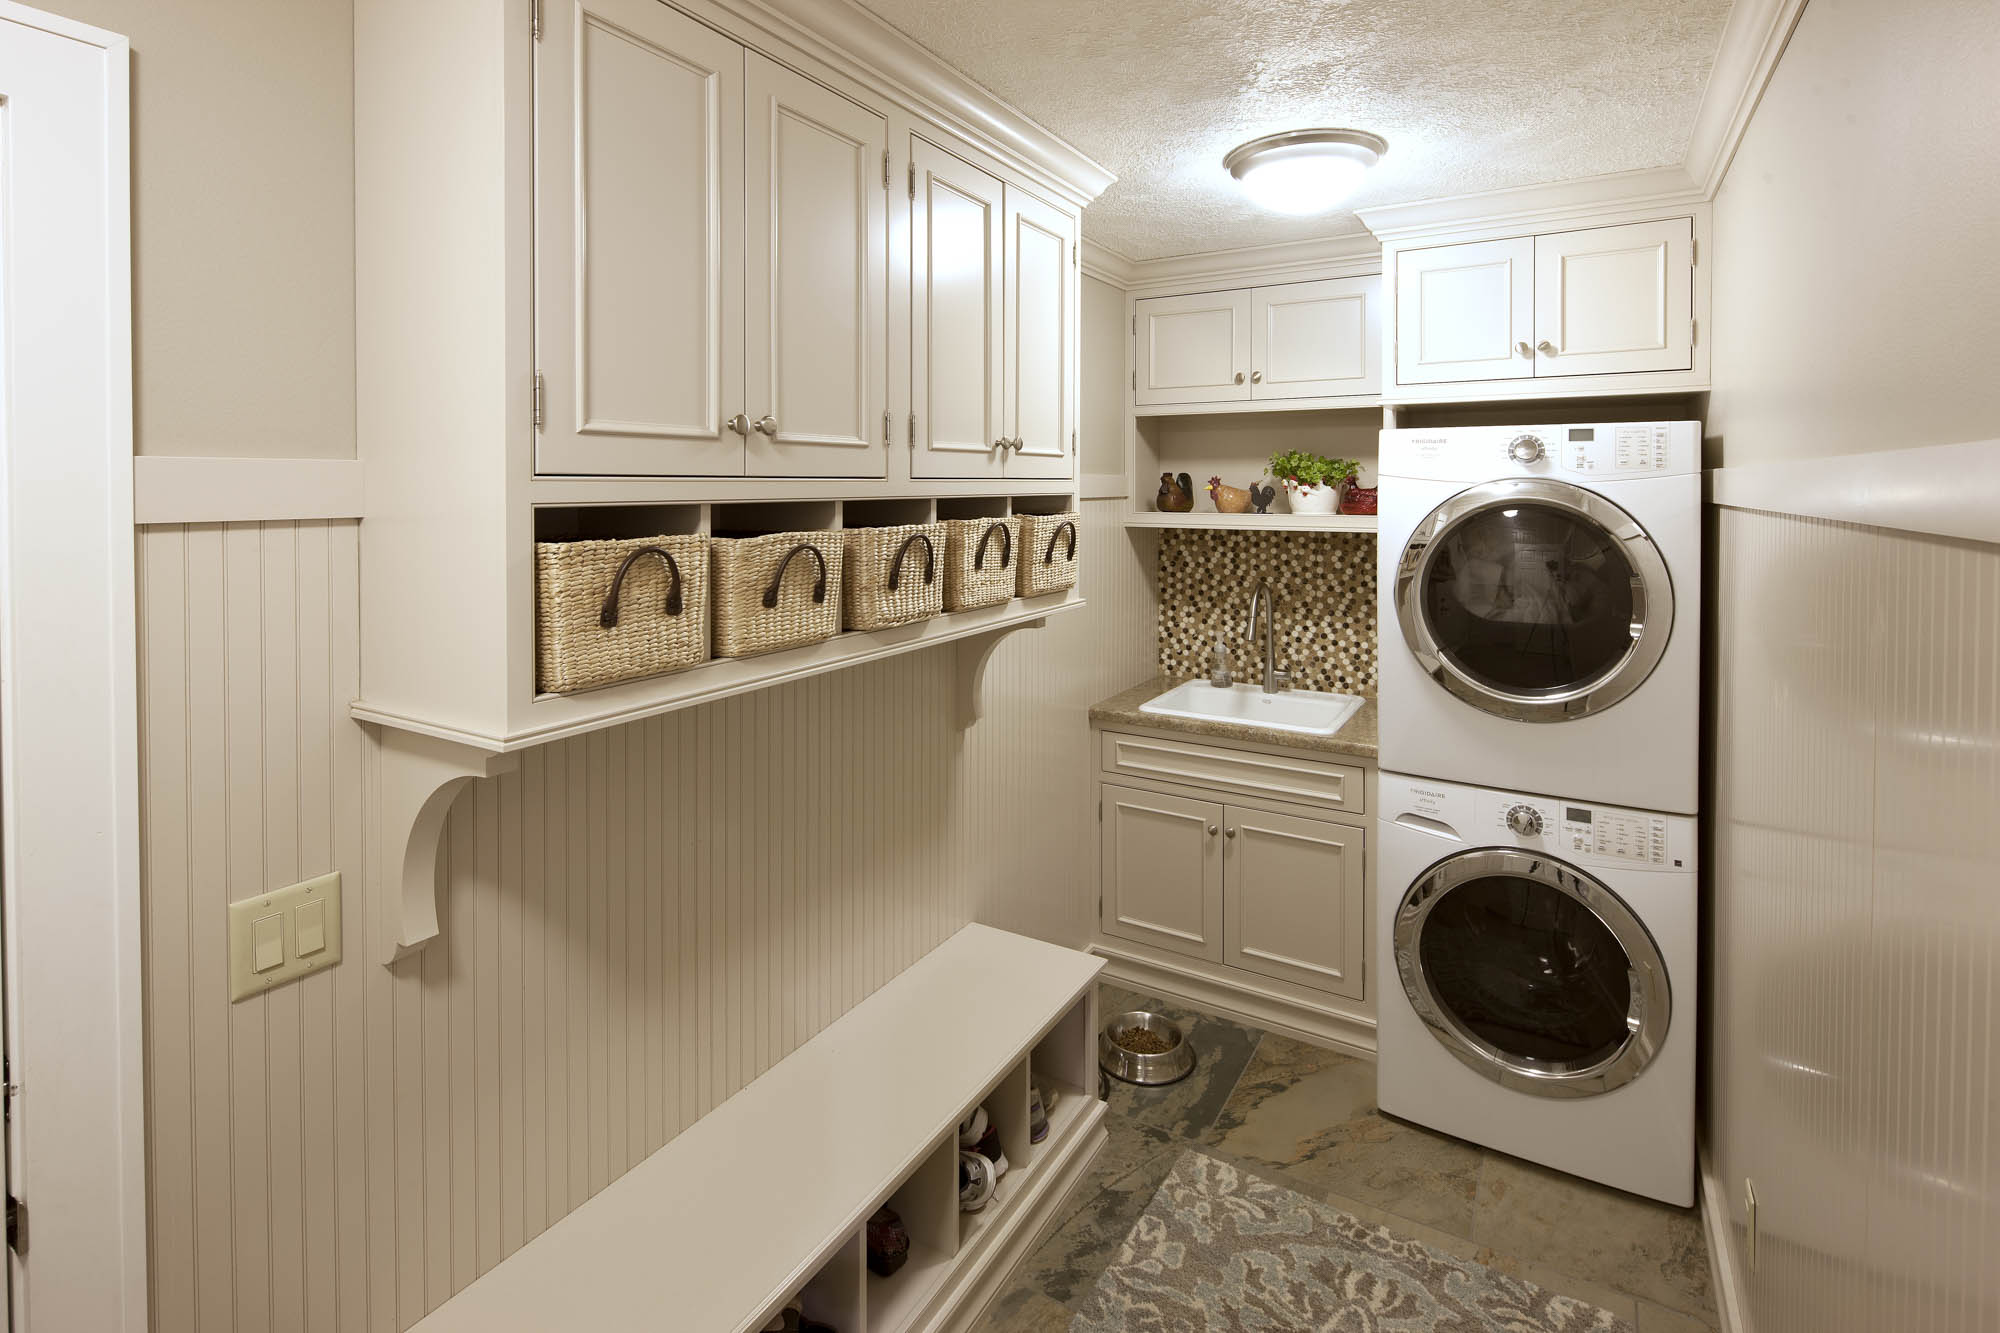 Painted laundry room cabinets in Light Mocha by Showplace Cabinetry